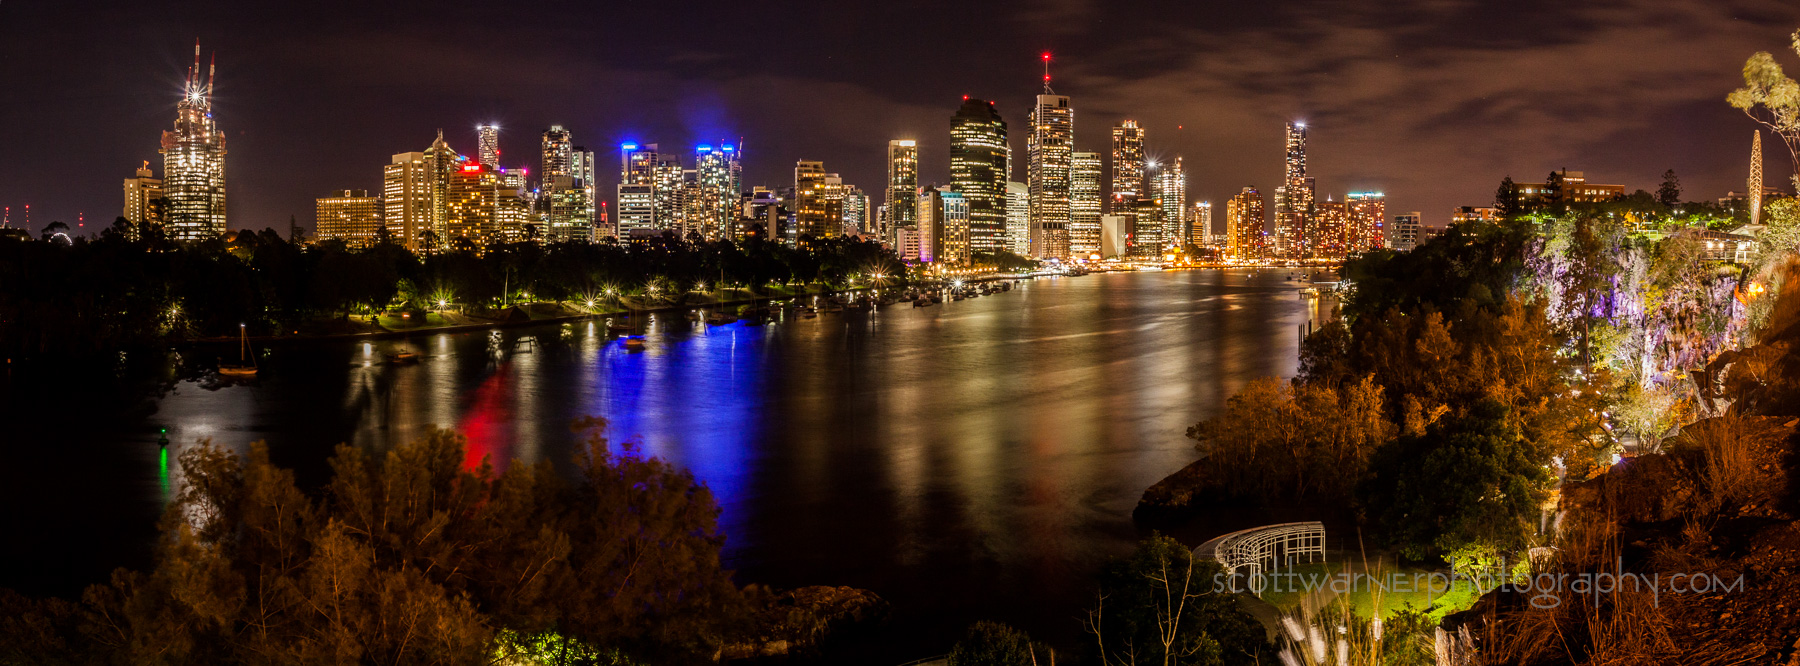 The CBD from Kangaroo point. A 2 shot panorama